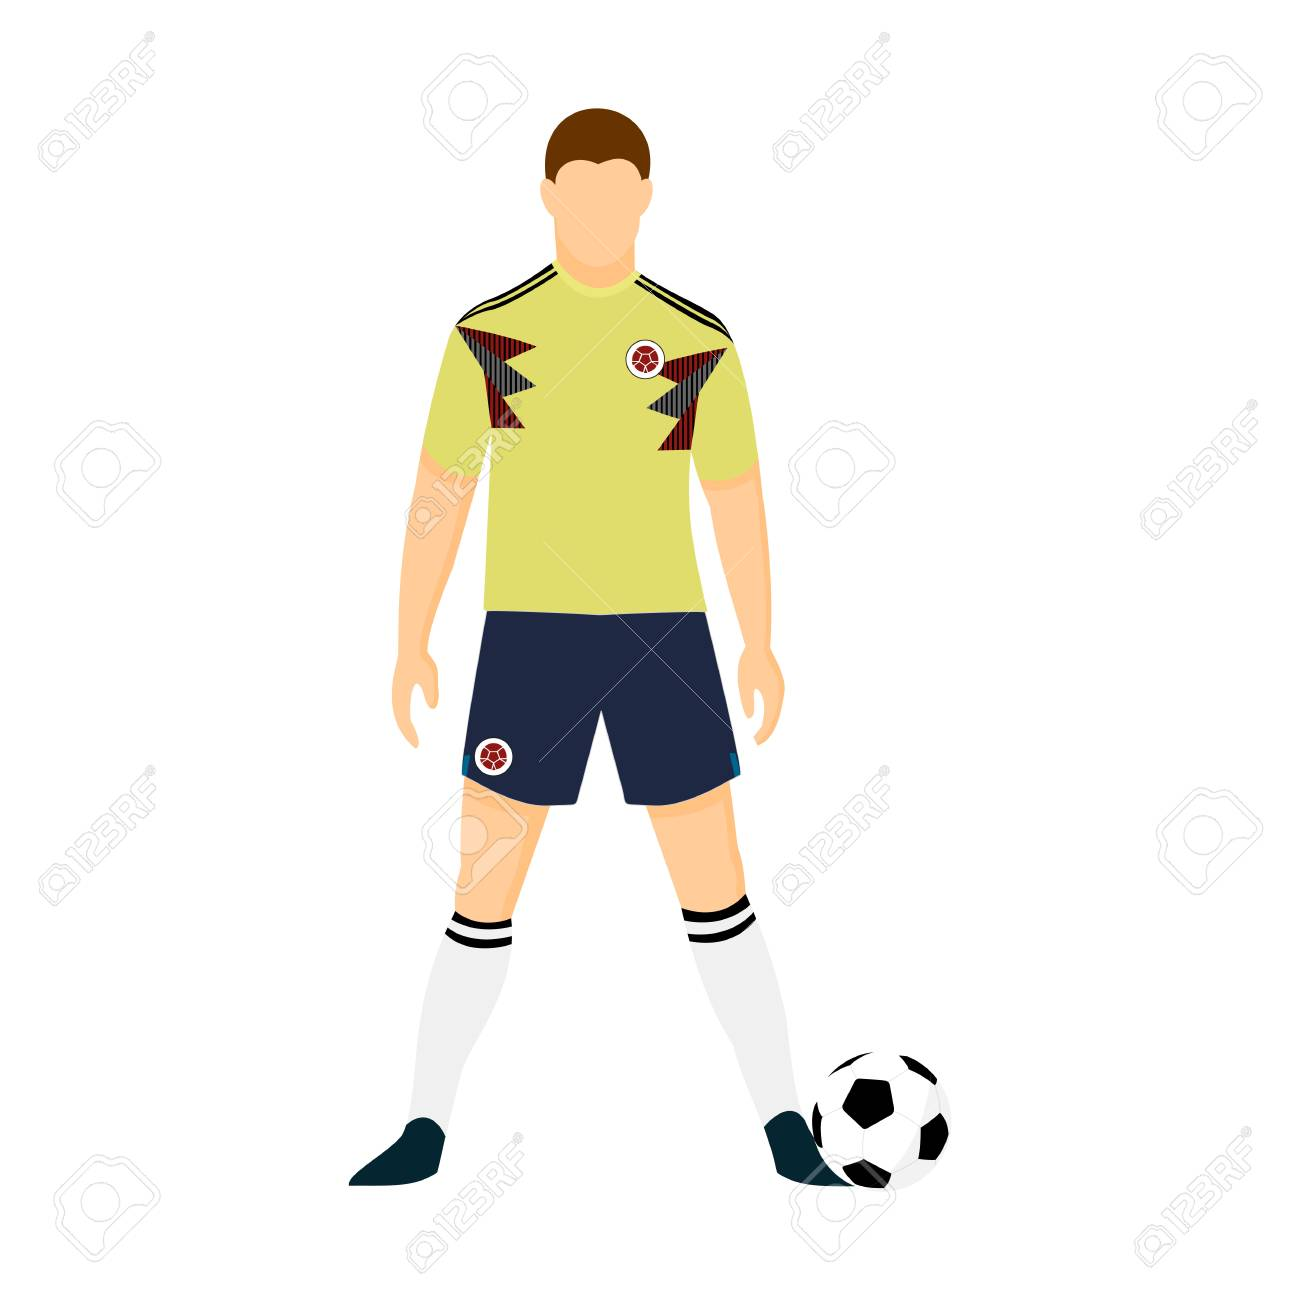 Columbia football jersey national team vector illustration graphic design.  Stock Vector - 97620145 aa670db30